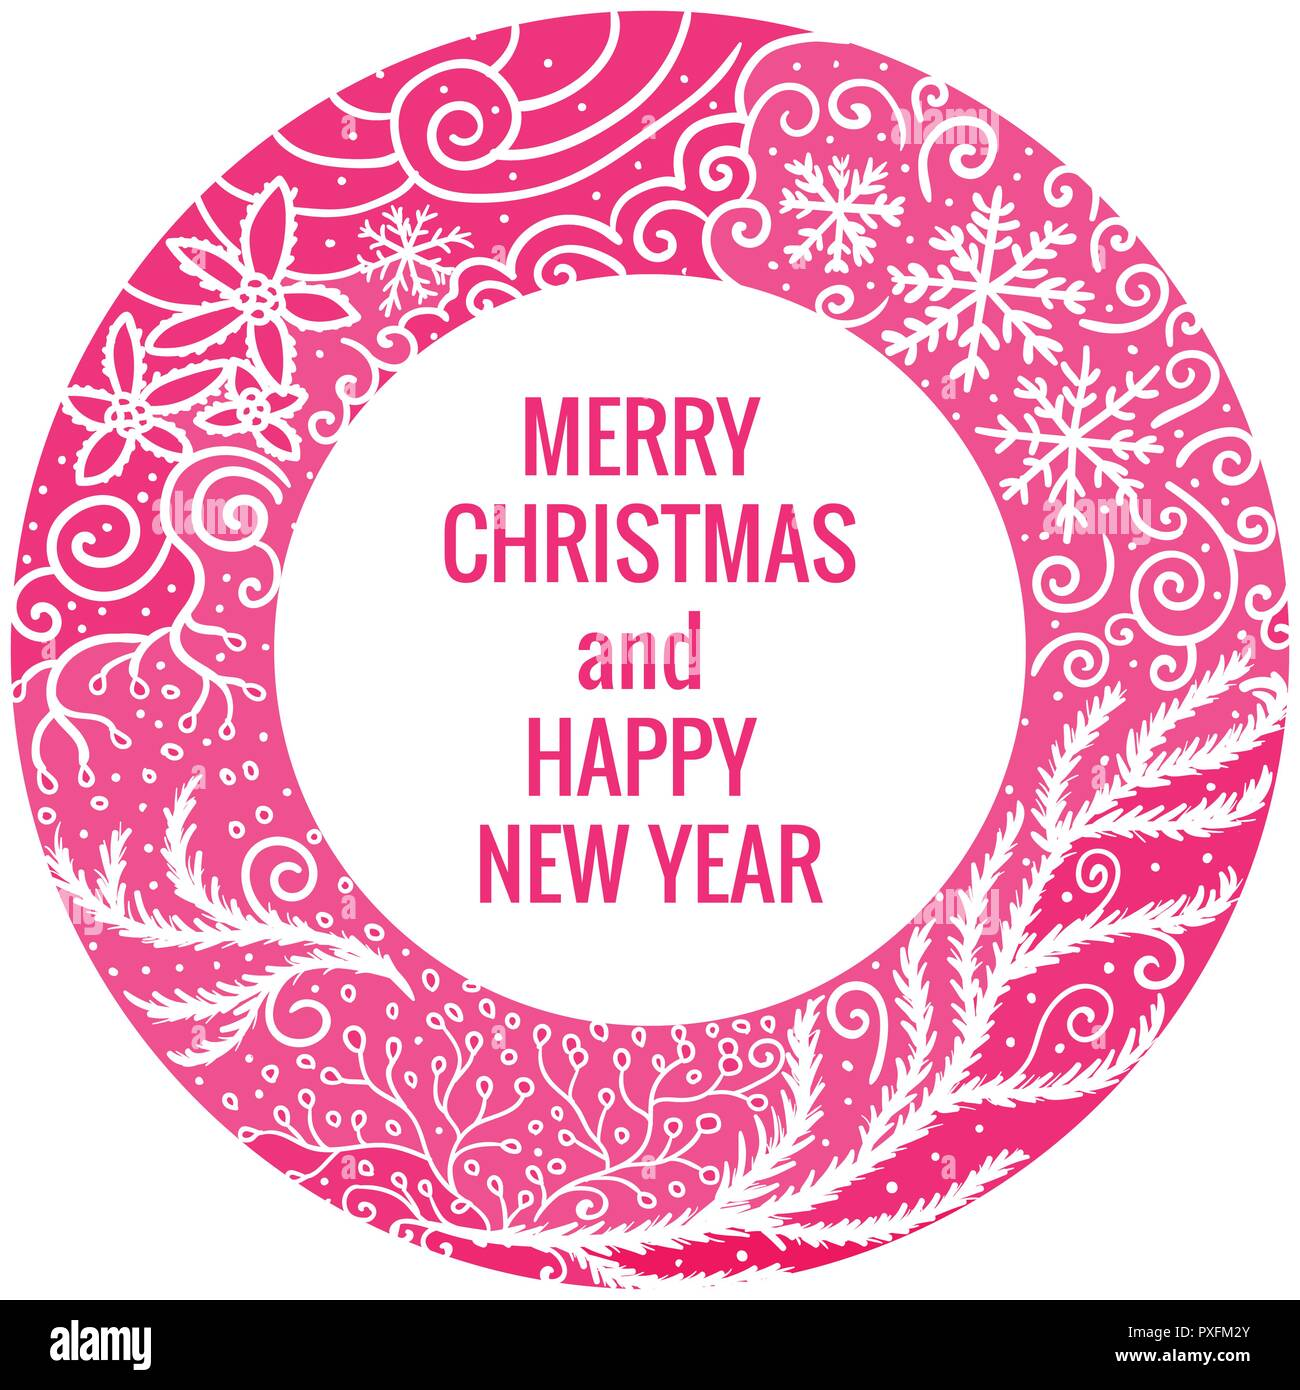 card merry christmas and happy new year round frame hand drawn pink color ornaments vector illustration isolated on white background